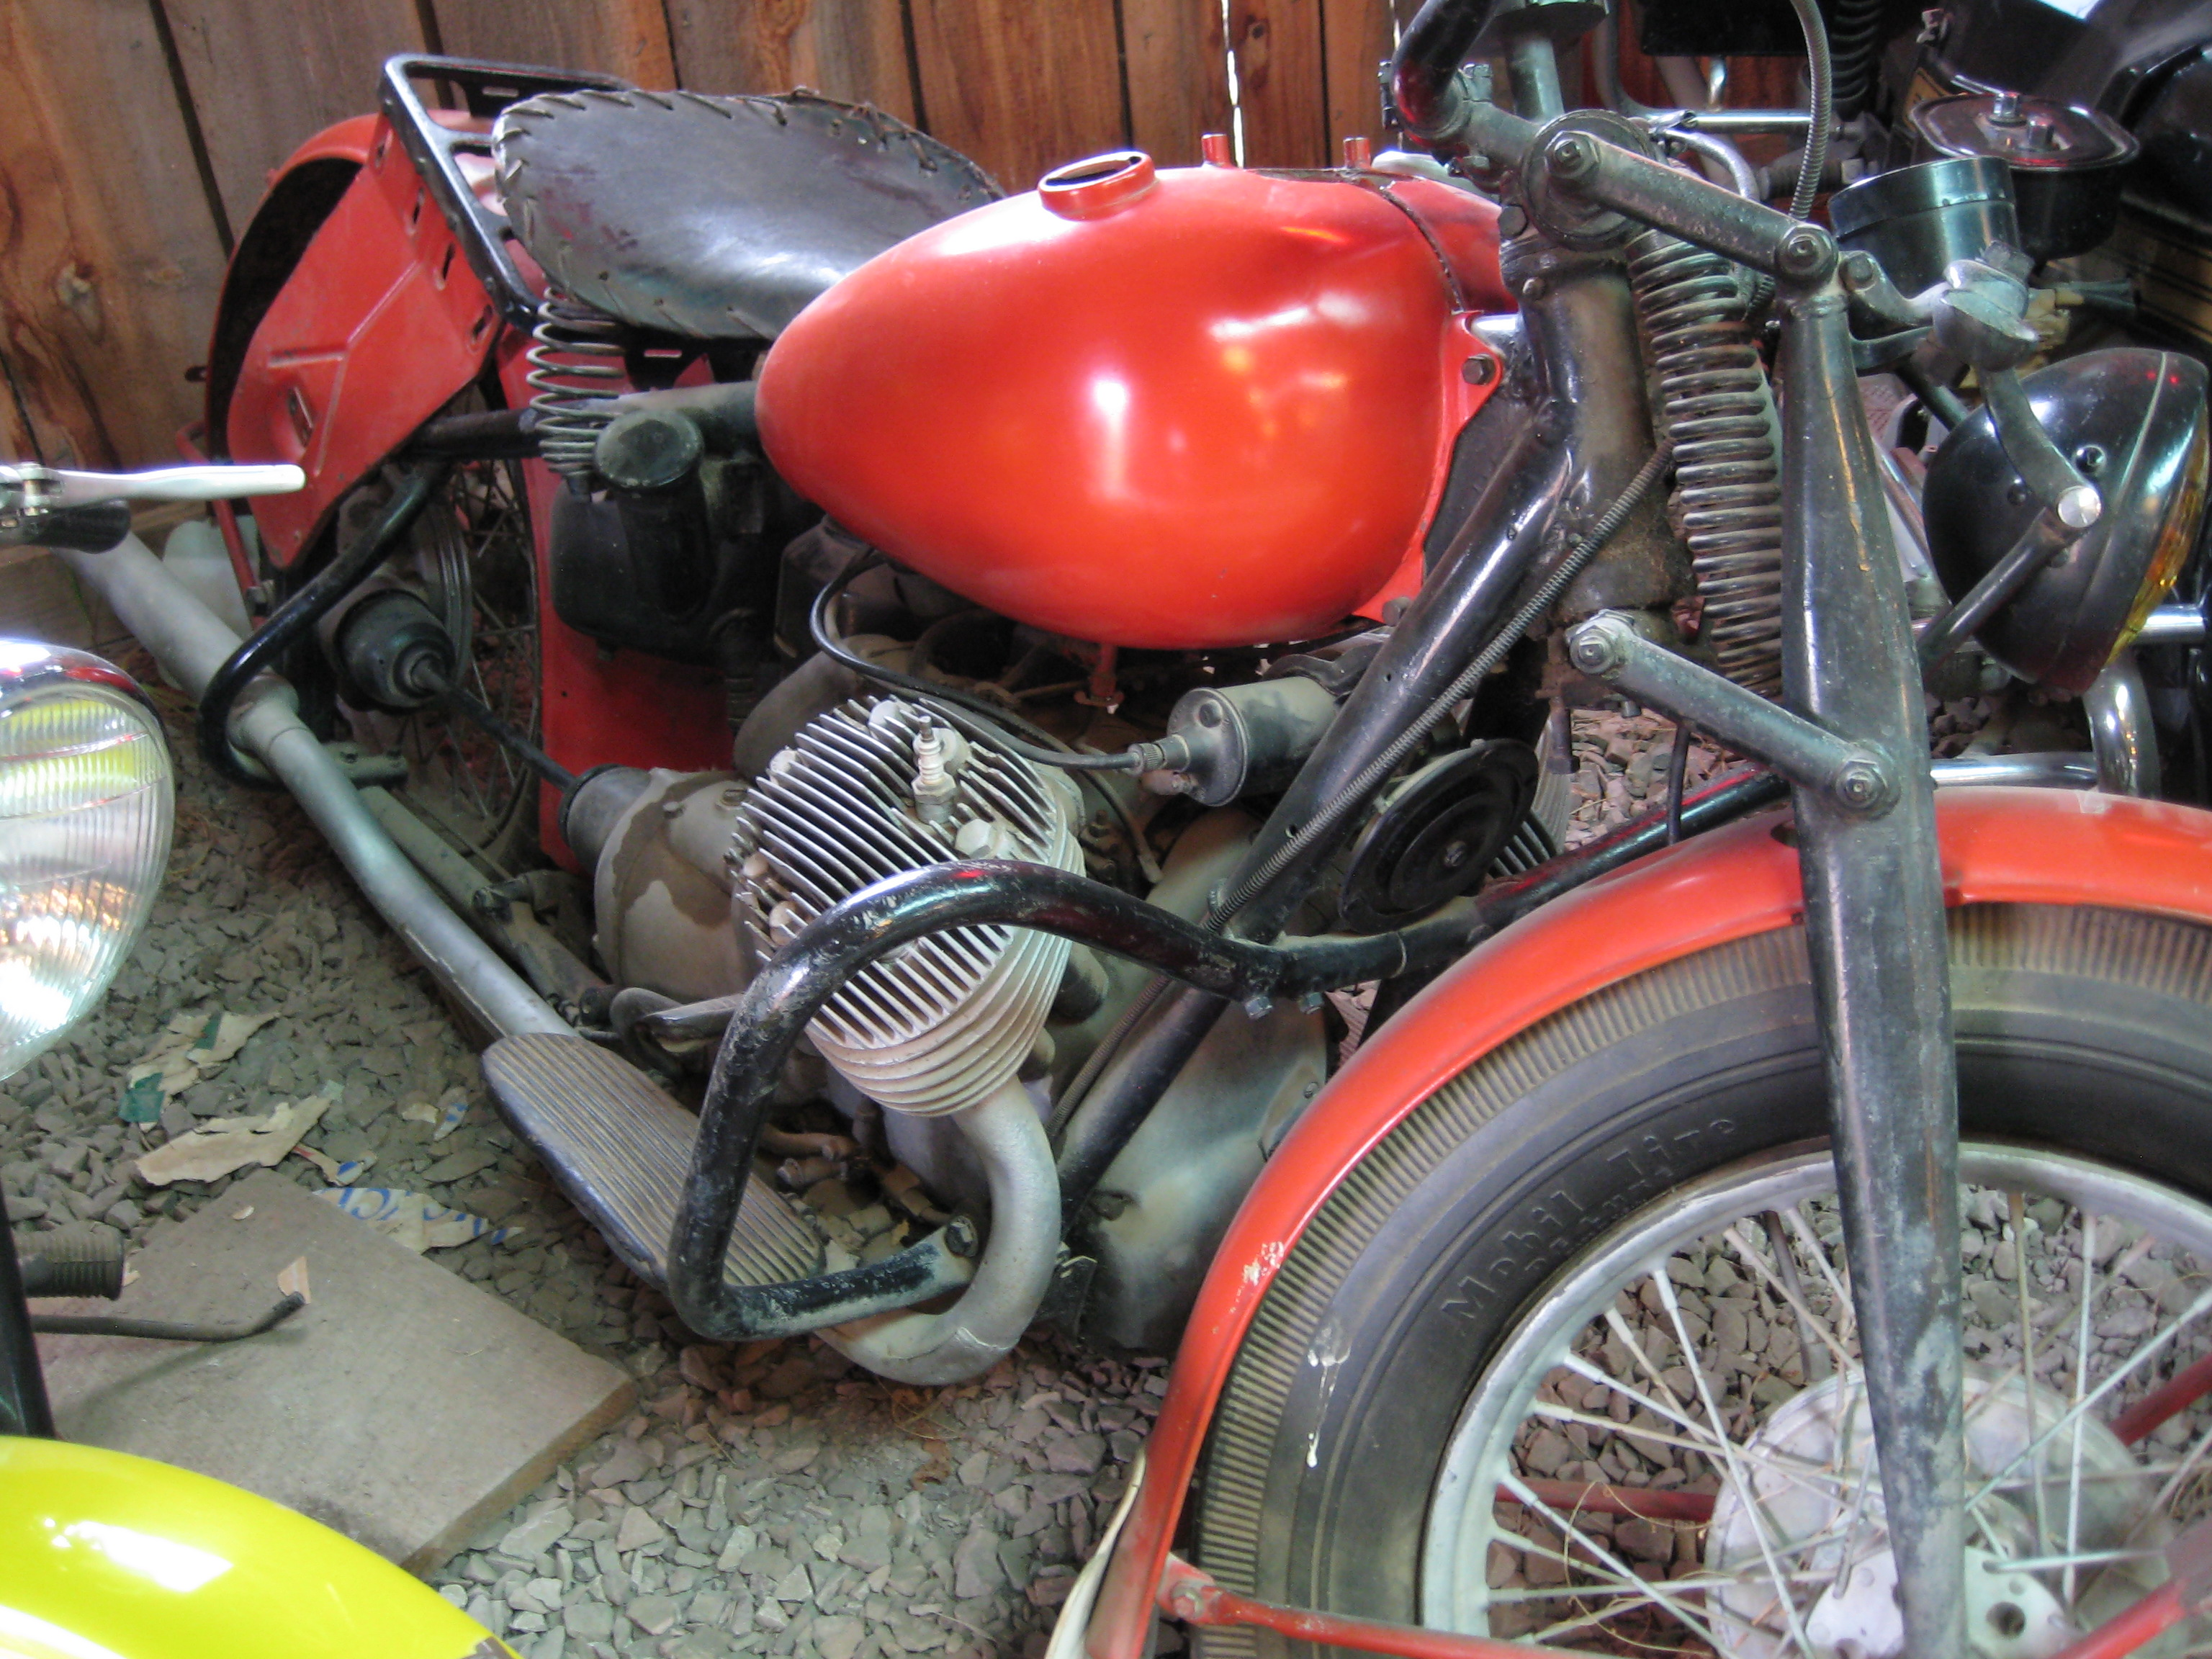 File:Indian 841.jpg - Wikimedia Commons